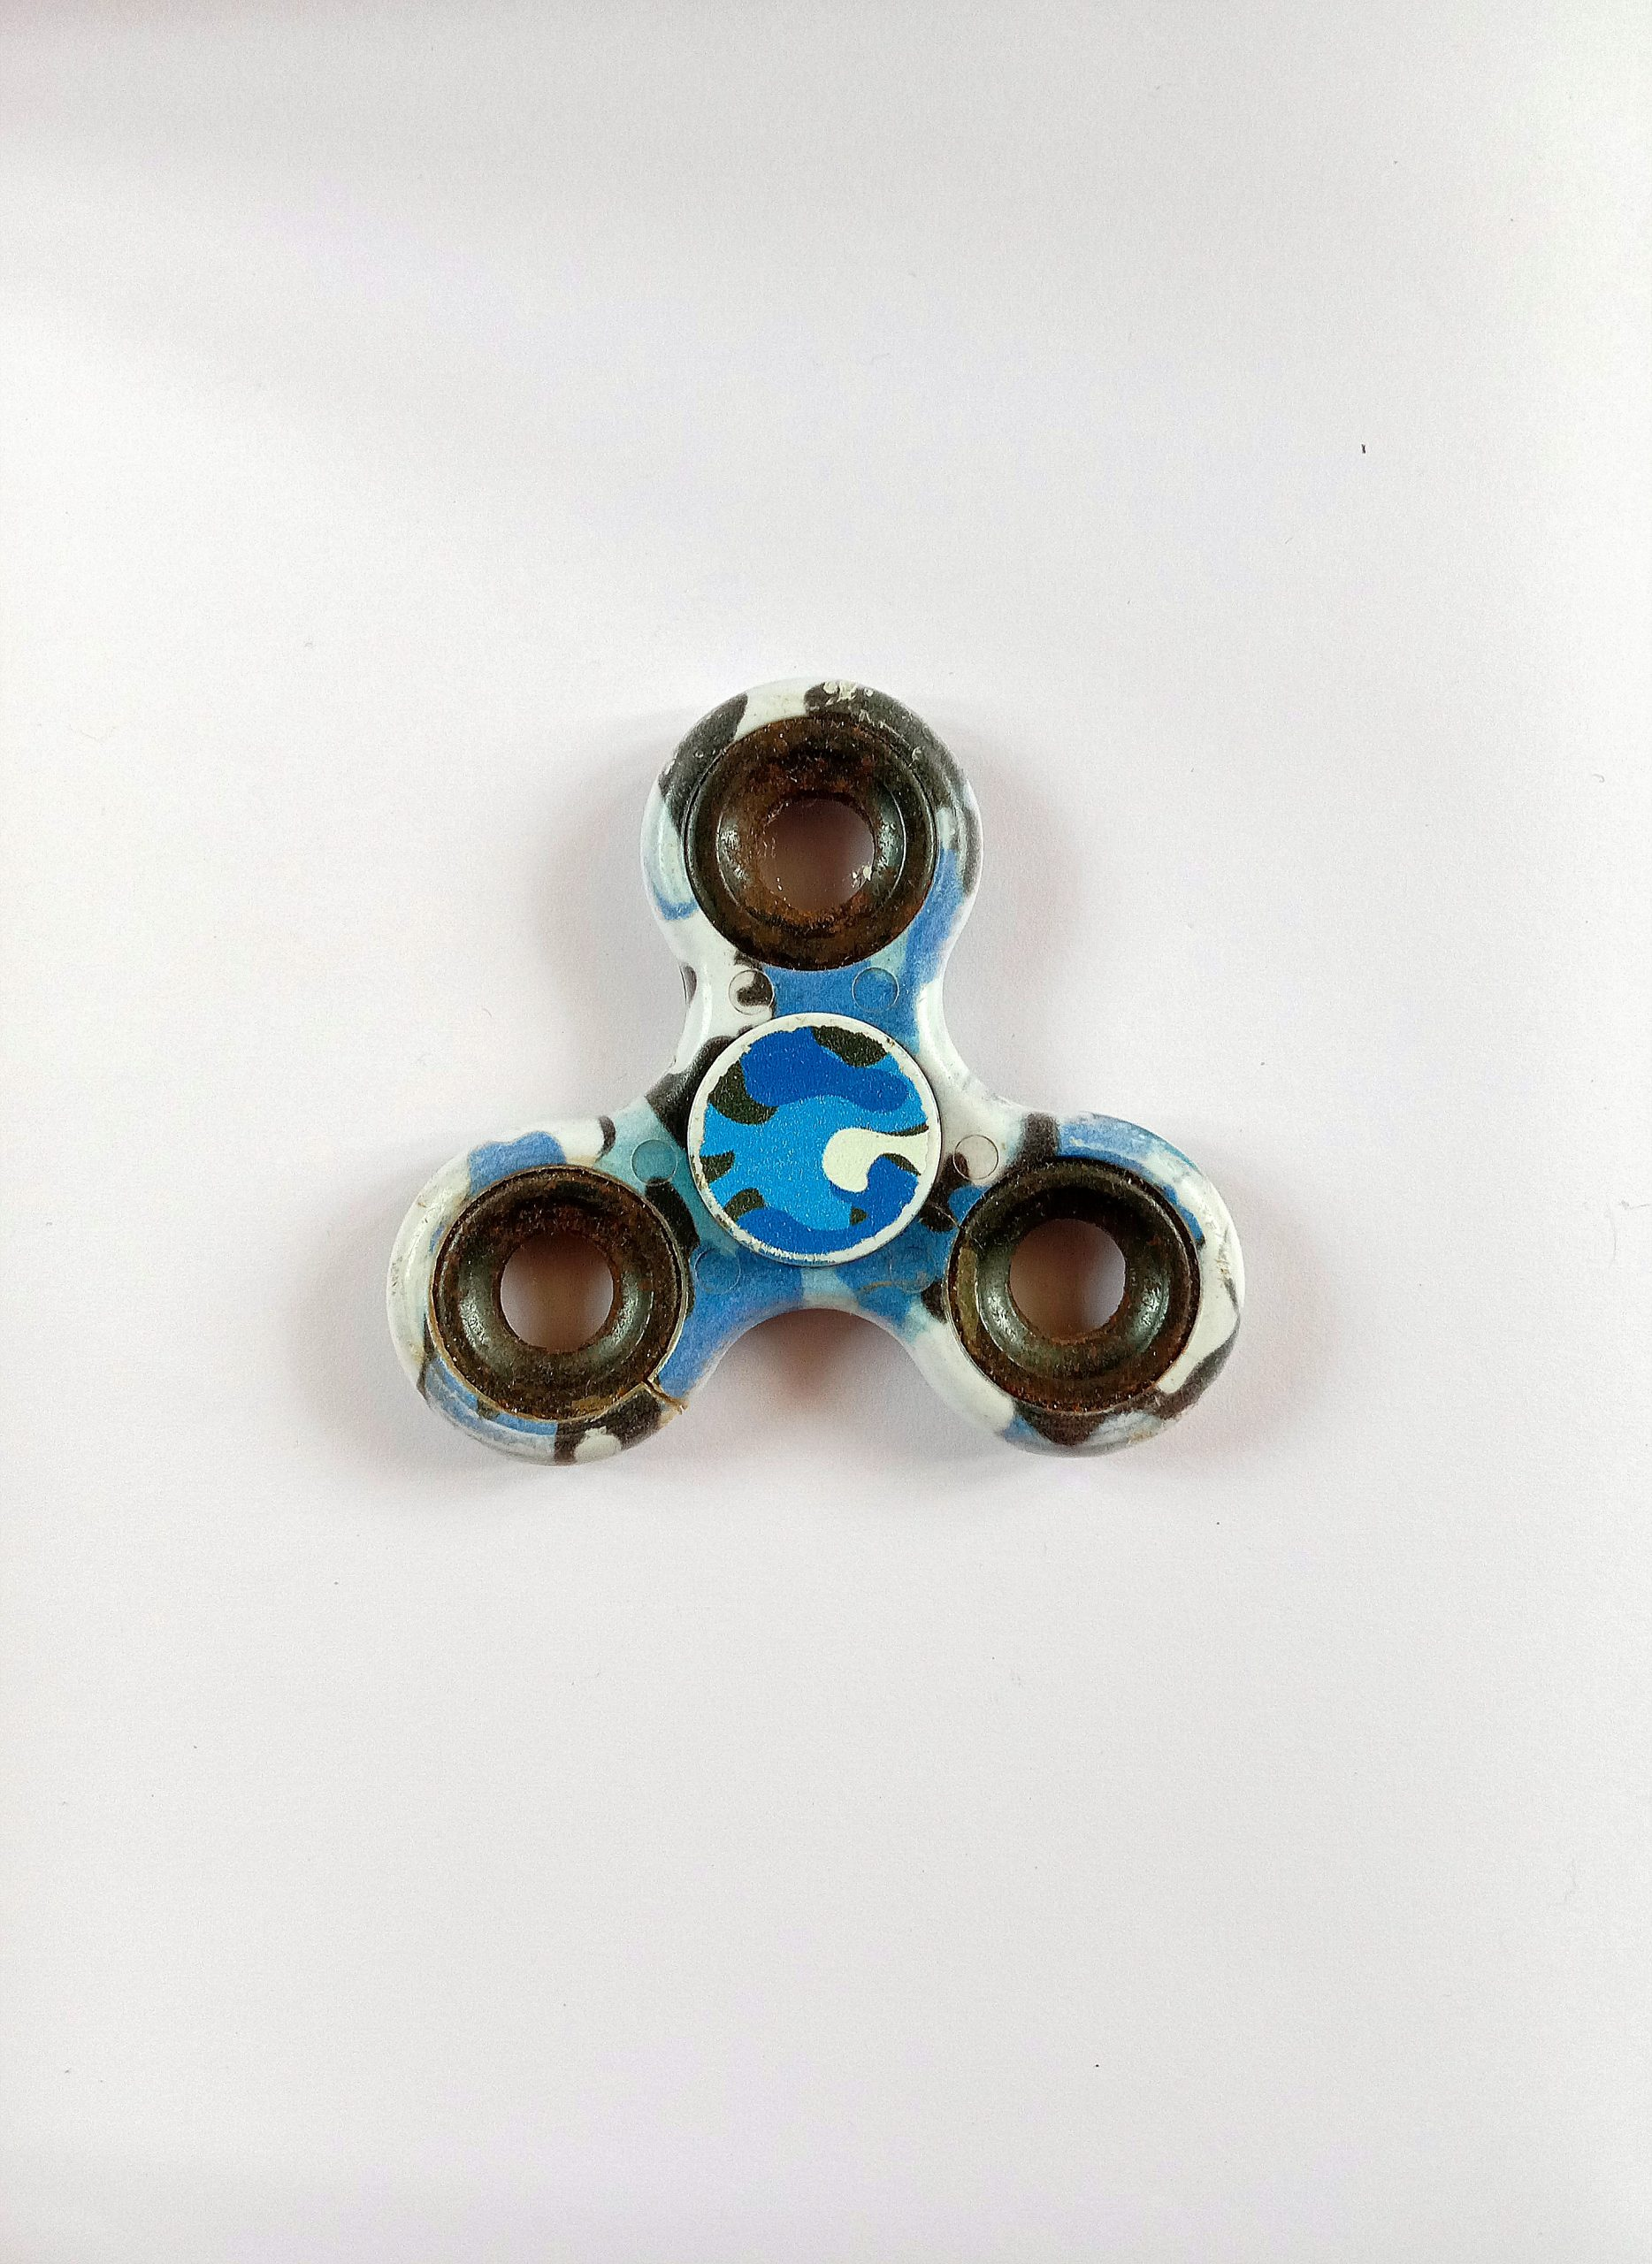 A spinner toy